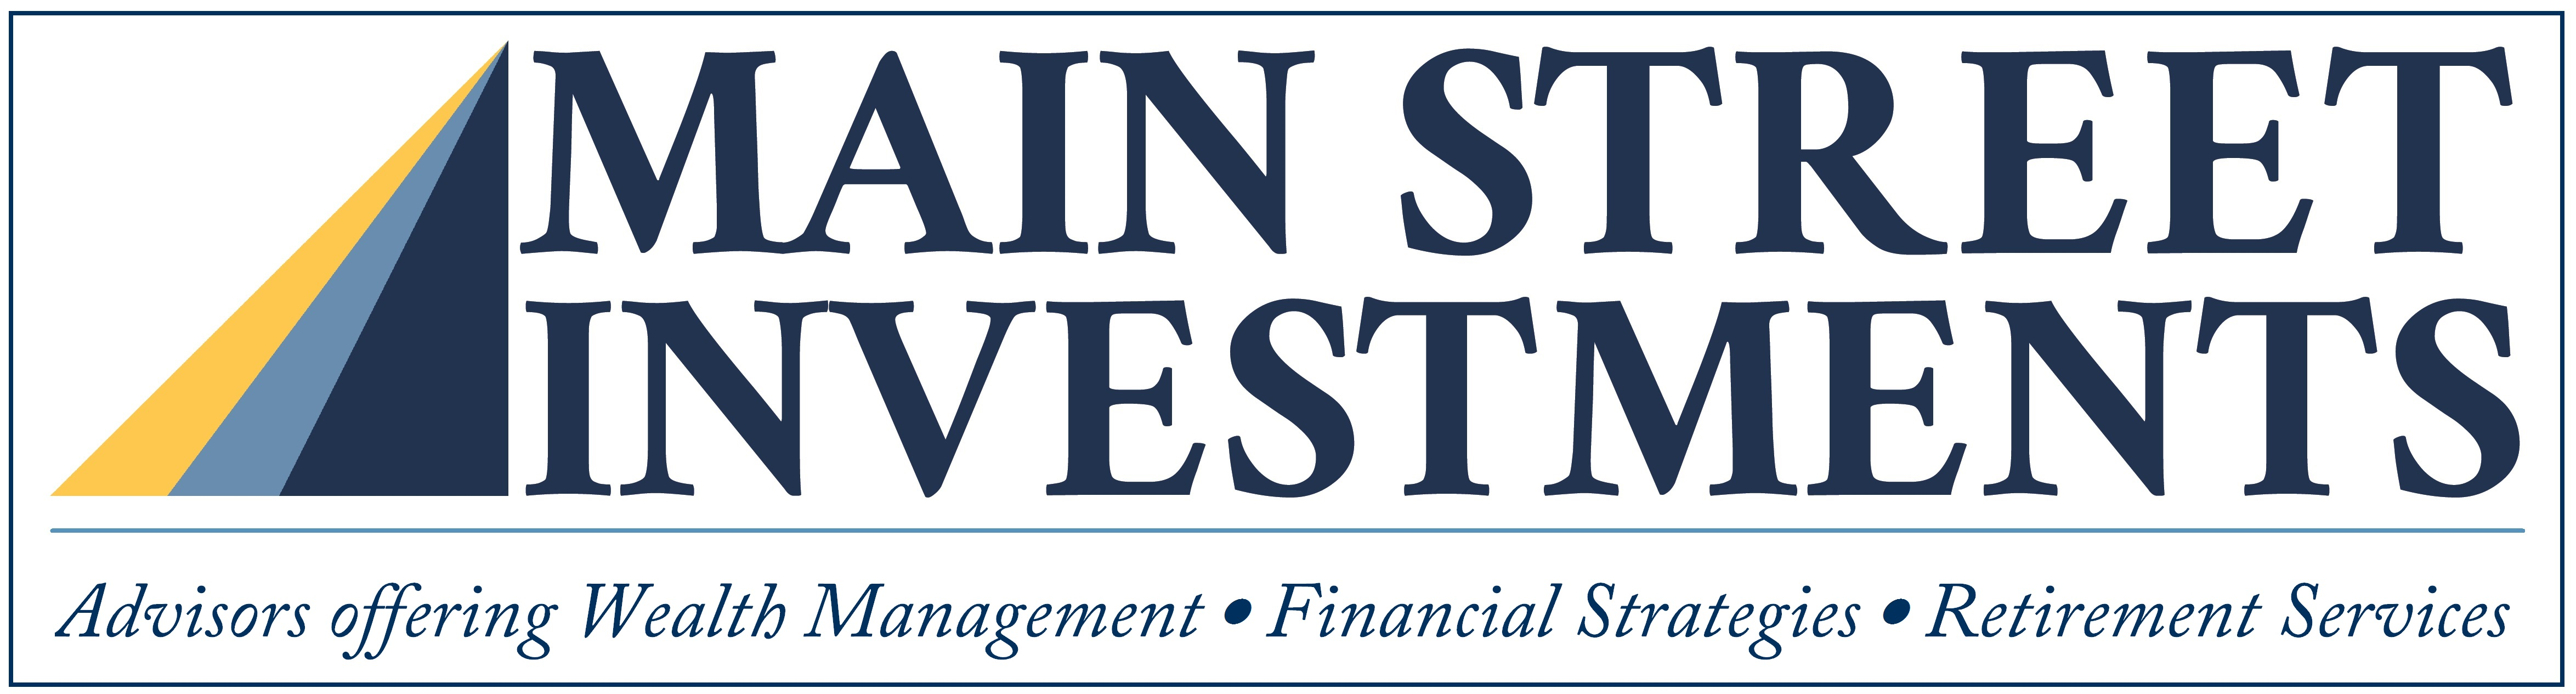 Mainstreet investments